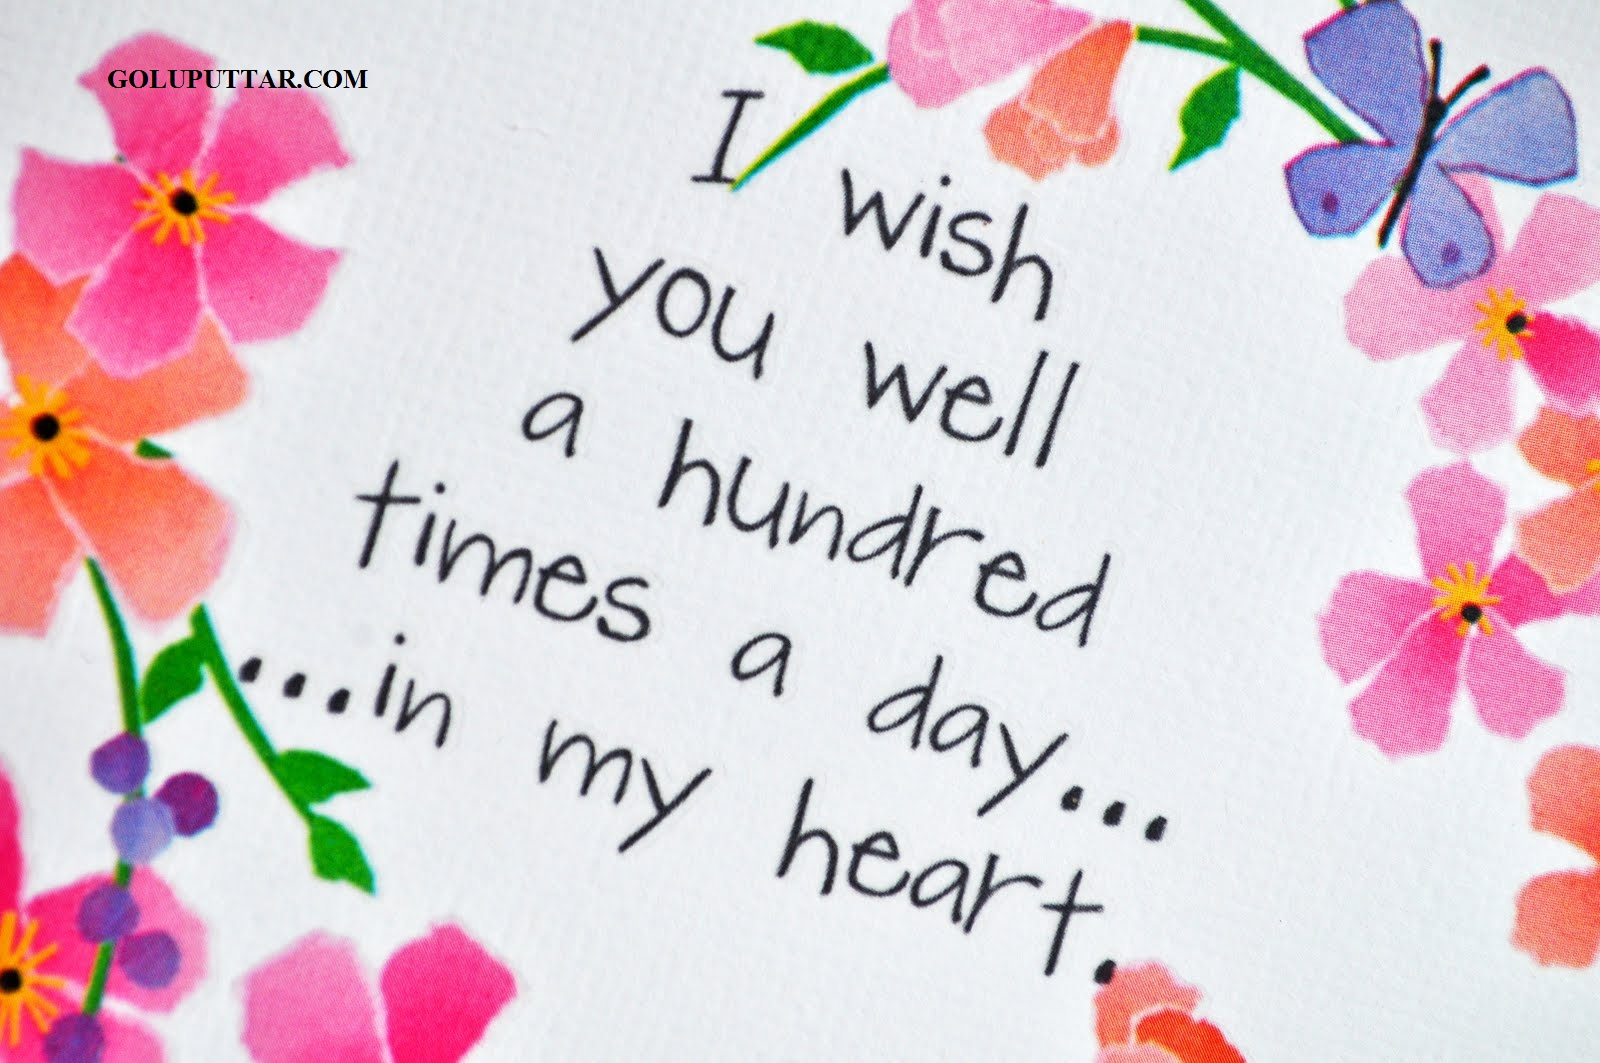 get well soon wishes and quotes - 016